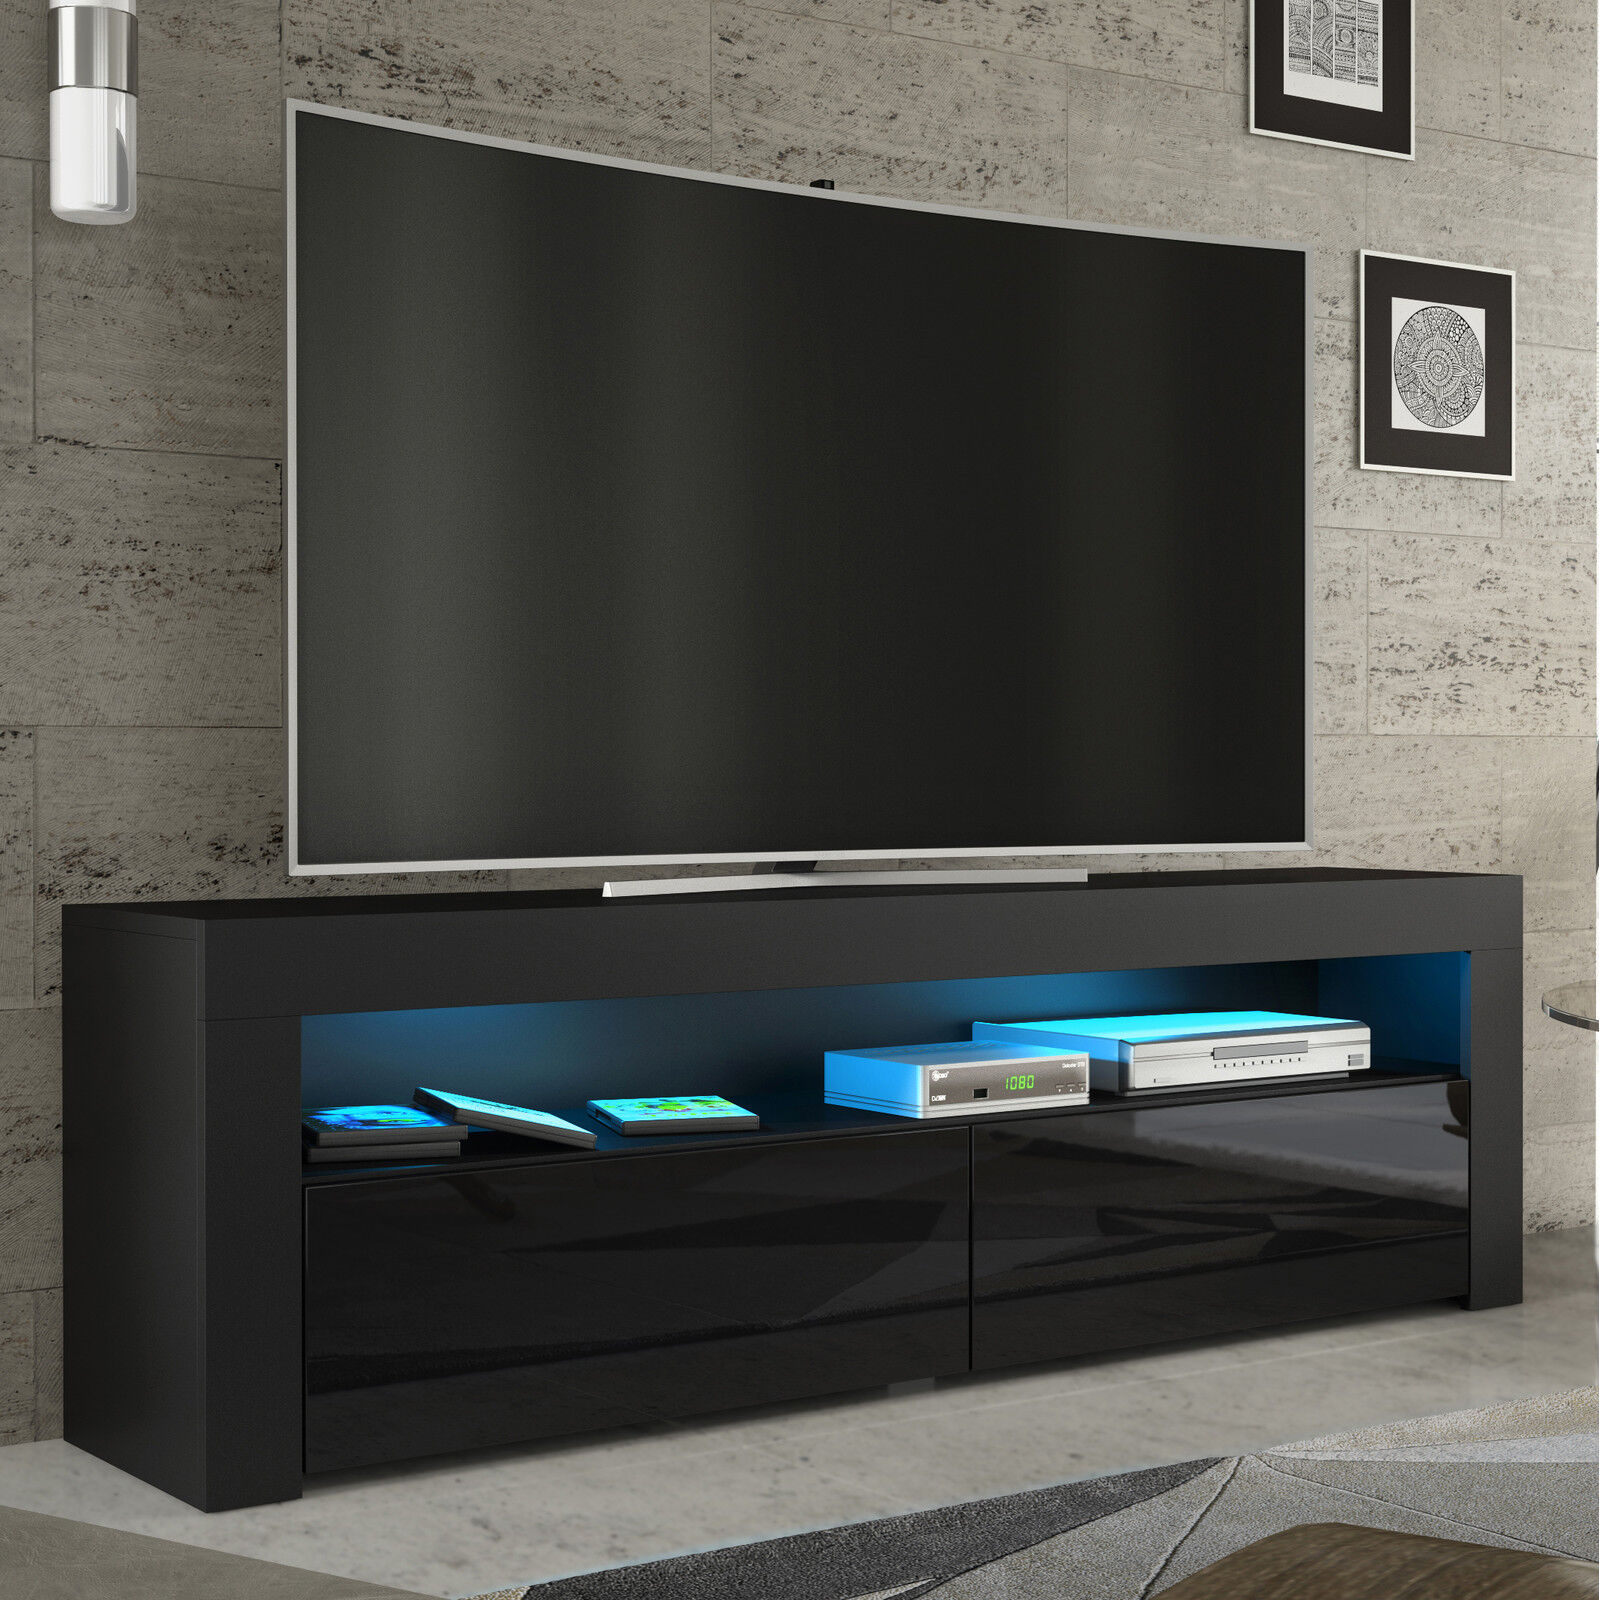 tv rack fernsehschrank lowboard sideboard hochglanz weiss. Black Bedroom Furniture Sets. Home Design Ideas